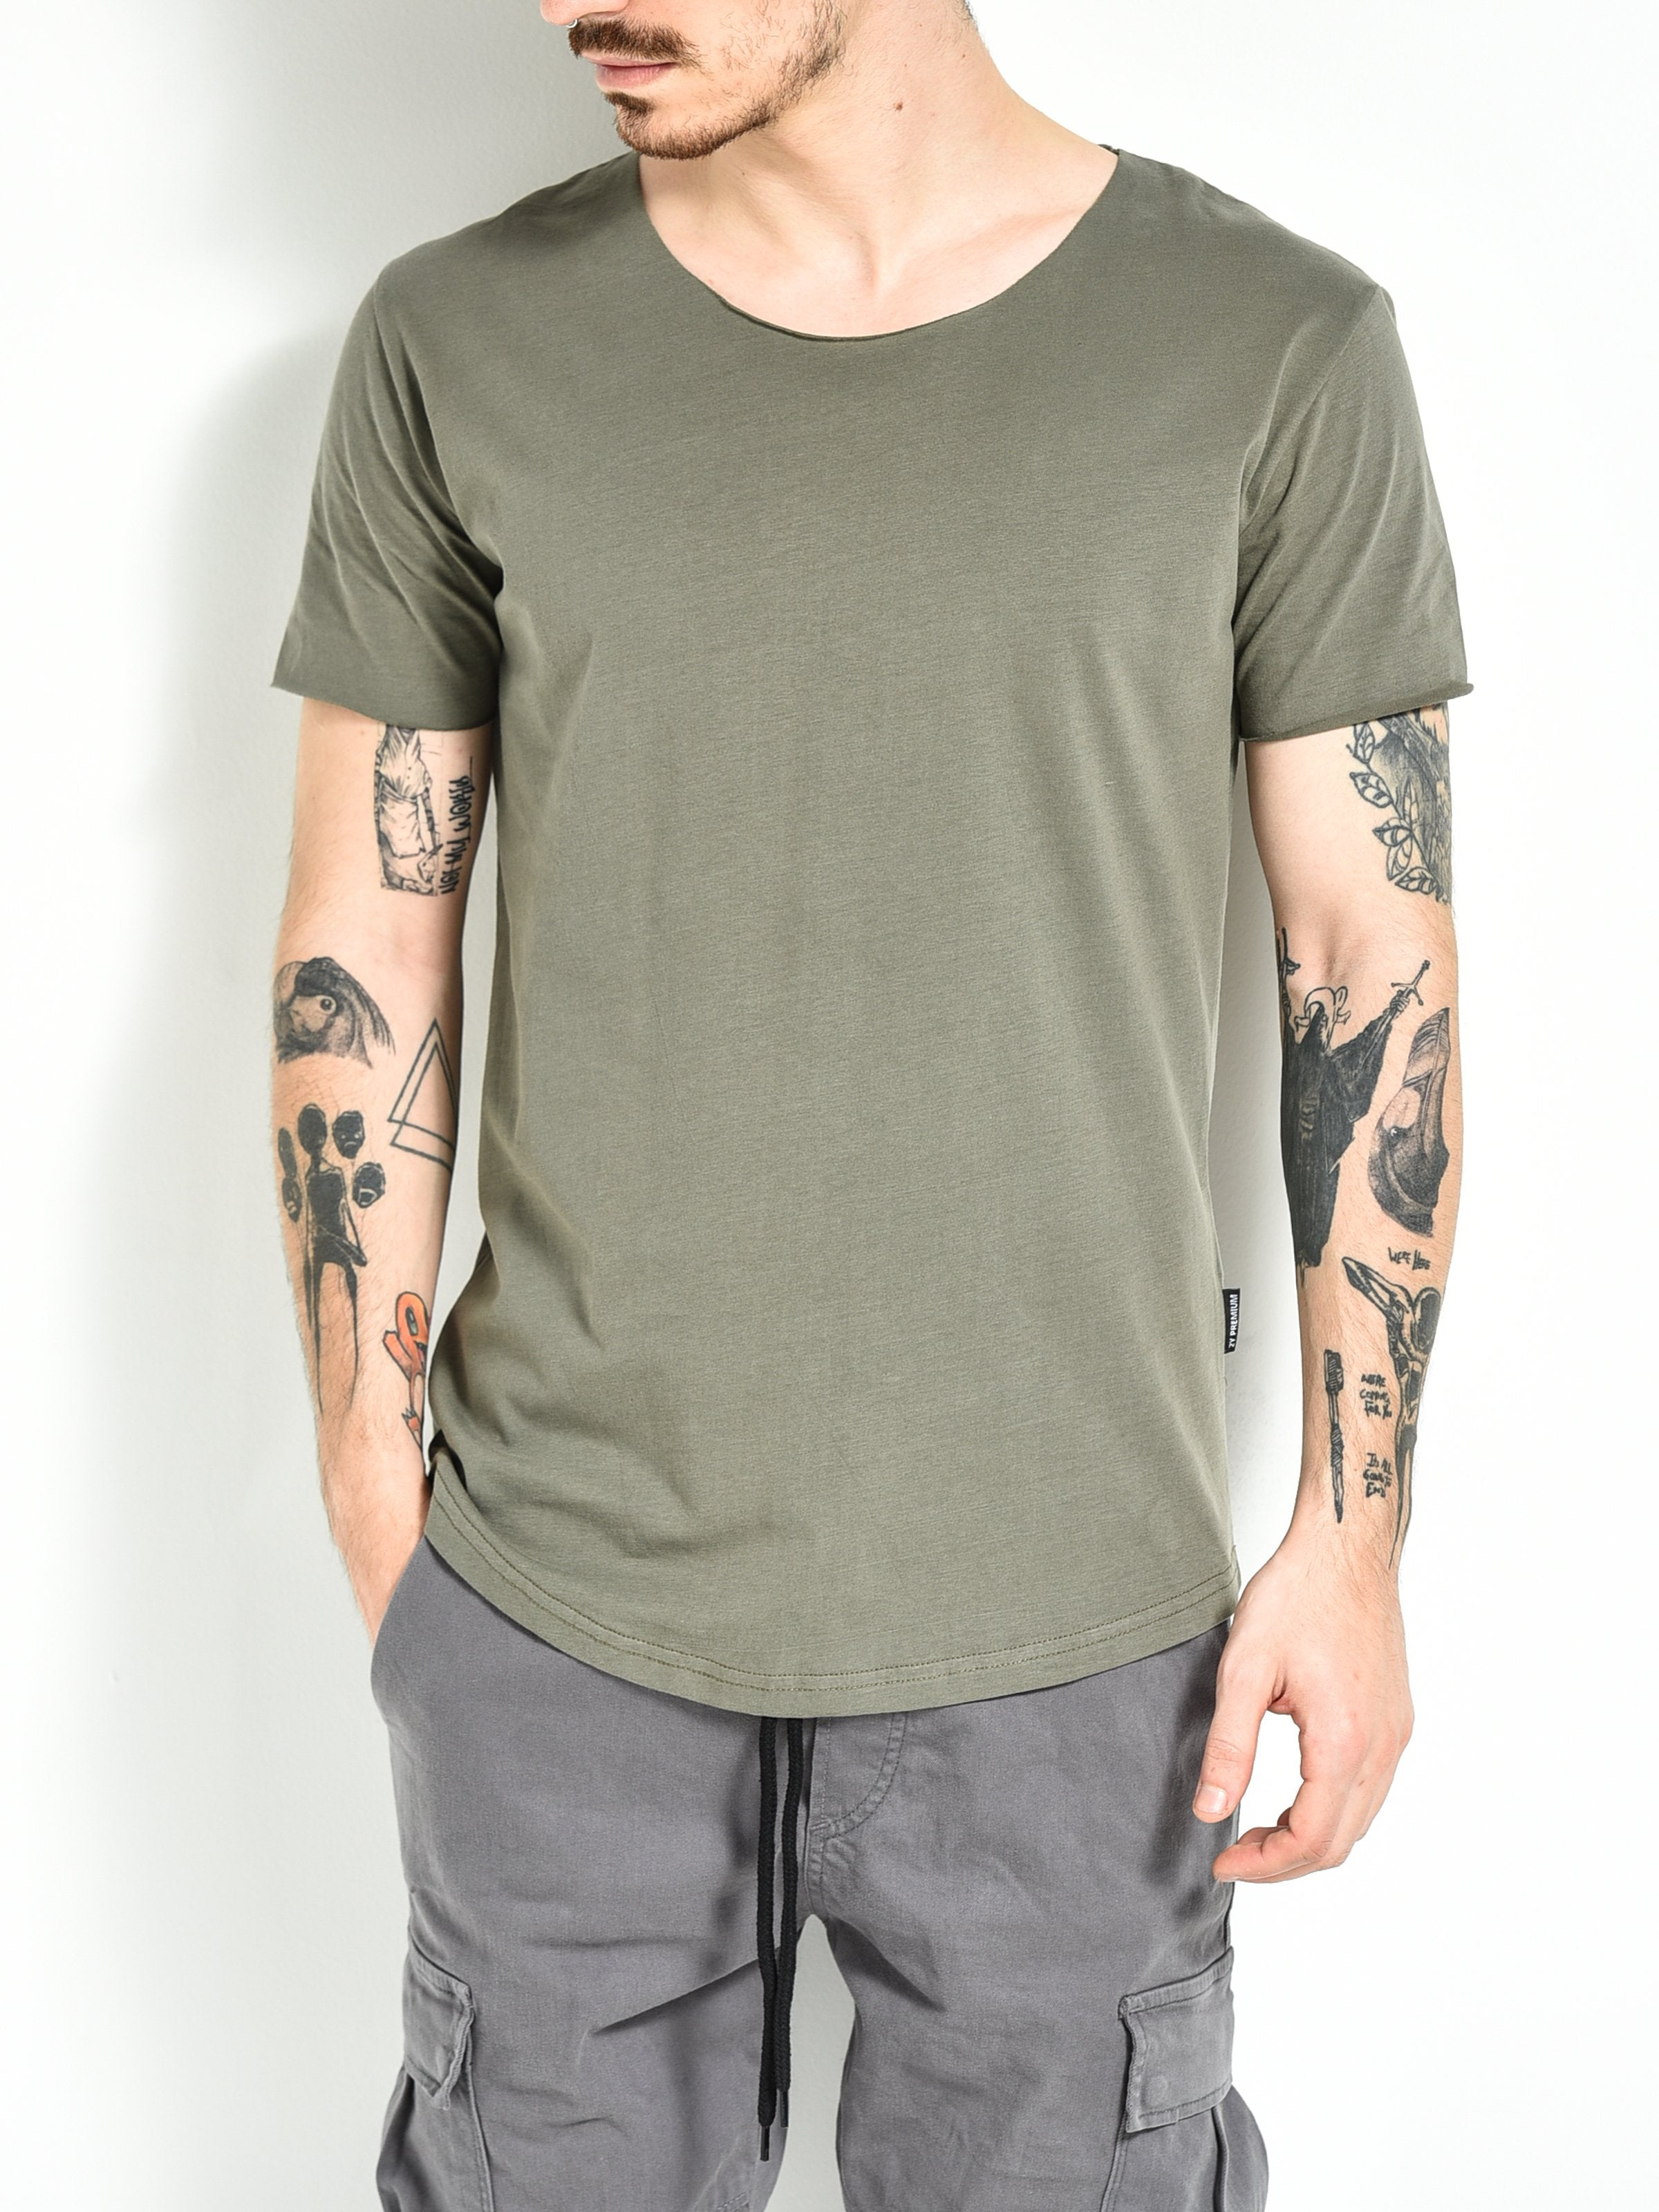 Scoop T-shirt - OD Green